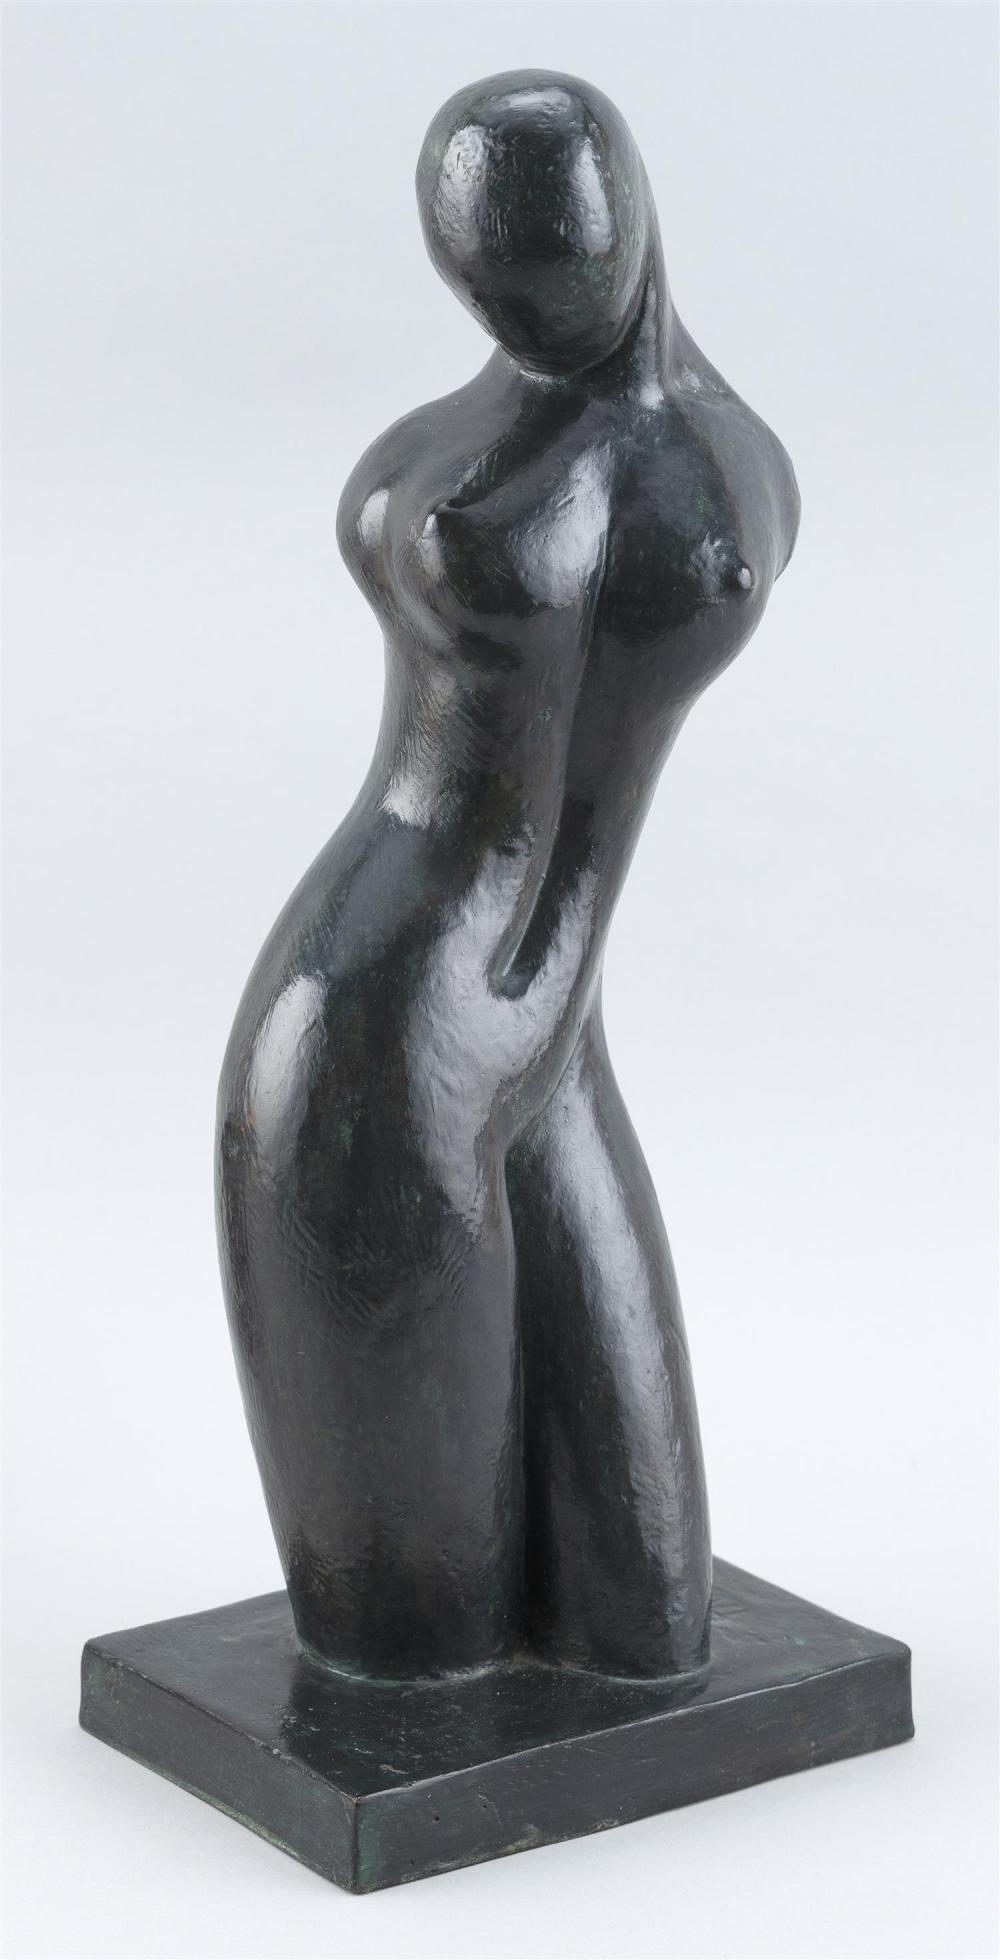 """ANGEL TARRAC, Spain, 1898-1979, Female nude., Cast bronze with applied verdigris patina, height 16""""."""